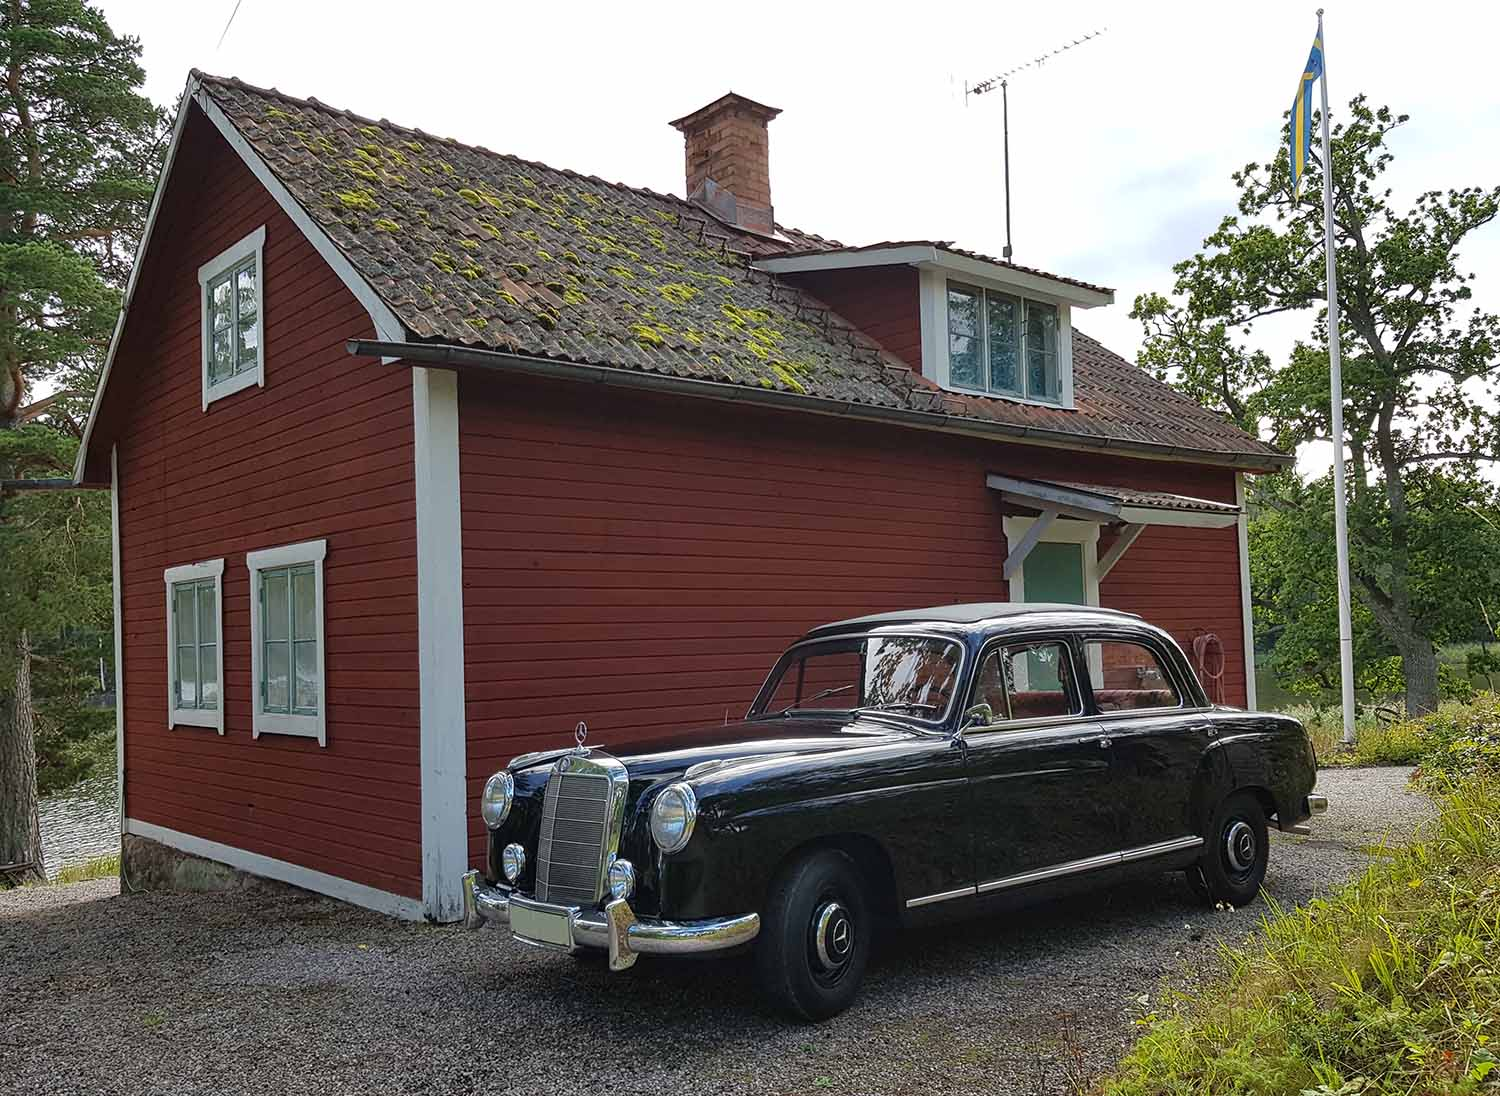 Mercedes-Benz 219 Ponton parked at the old countryside house